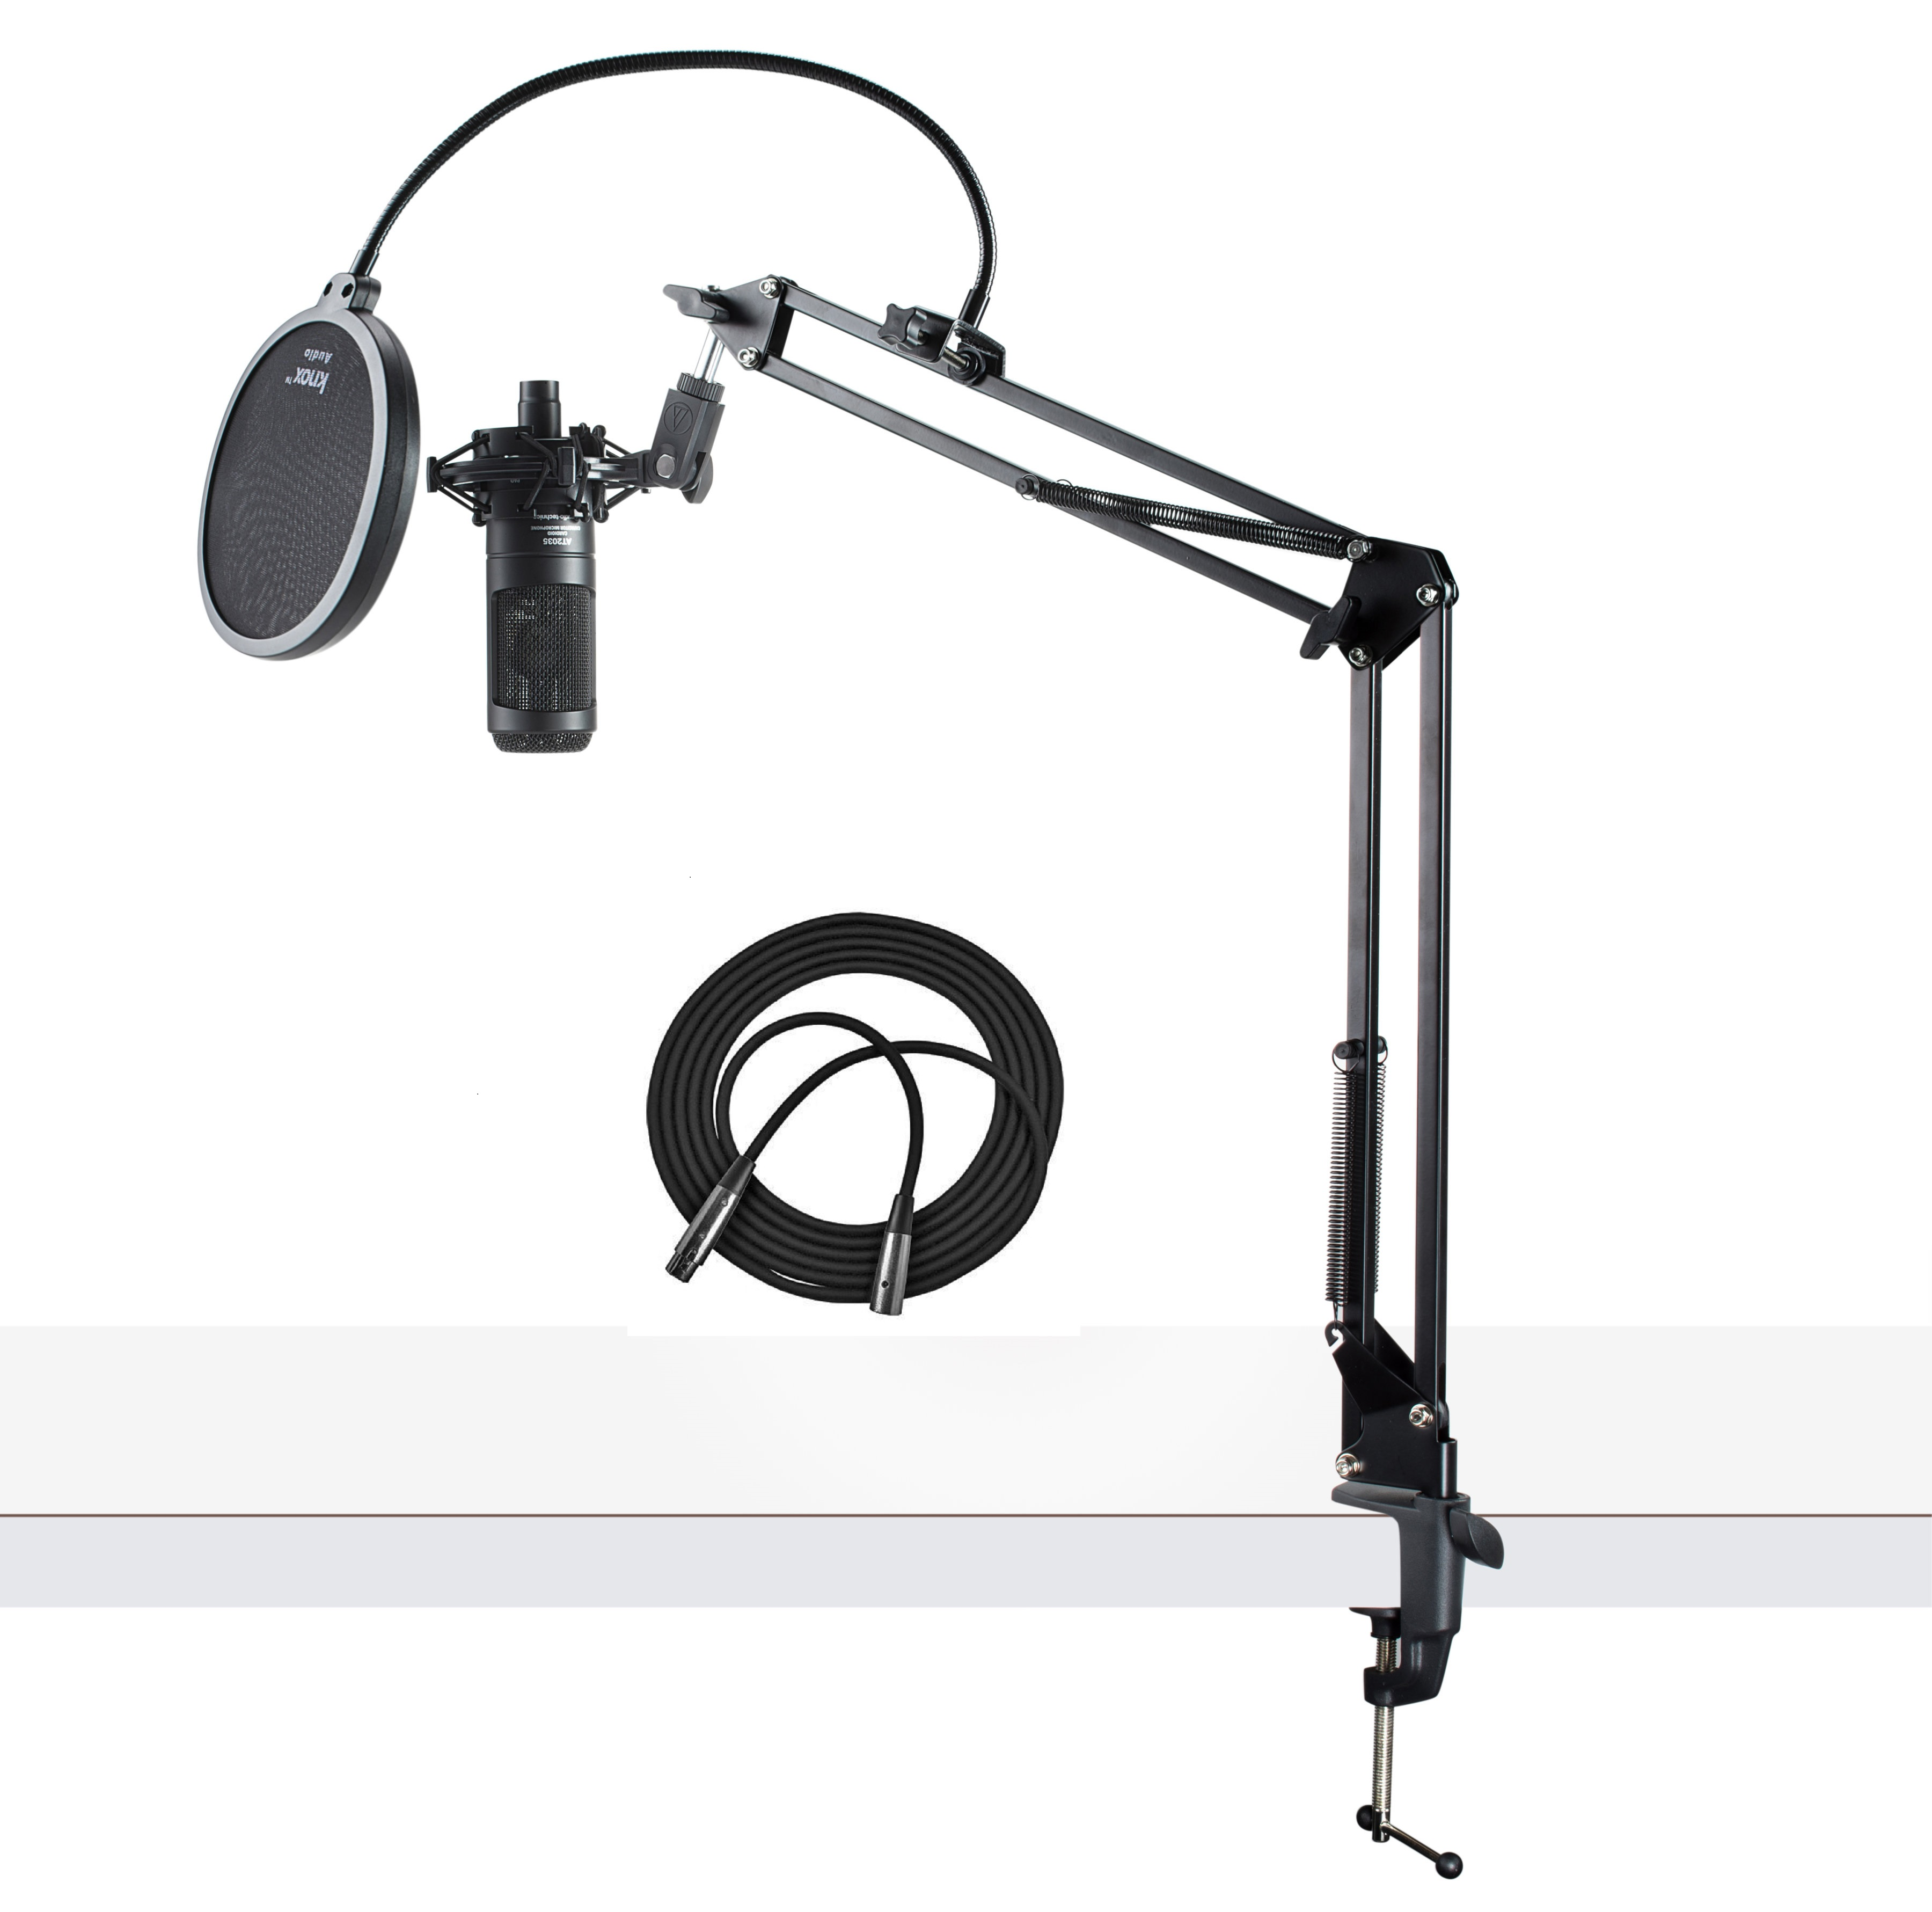 Audio-Technica AT2035 Studio Condenser Microphone with Knox Filter & Boom Arm by Audio Technica